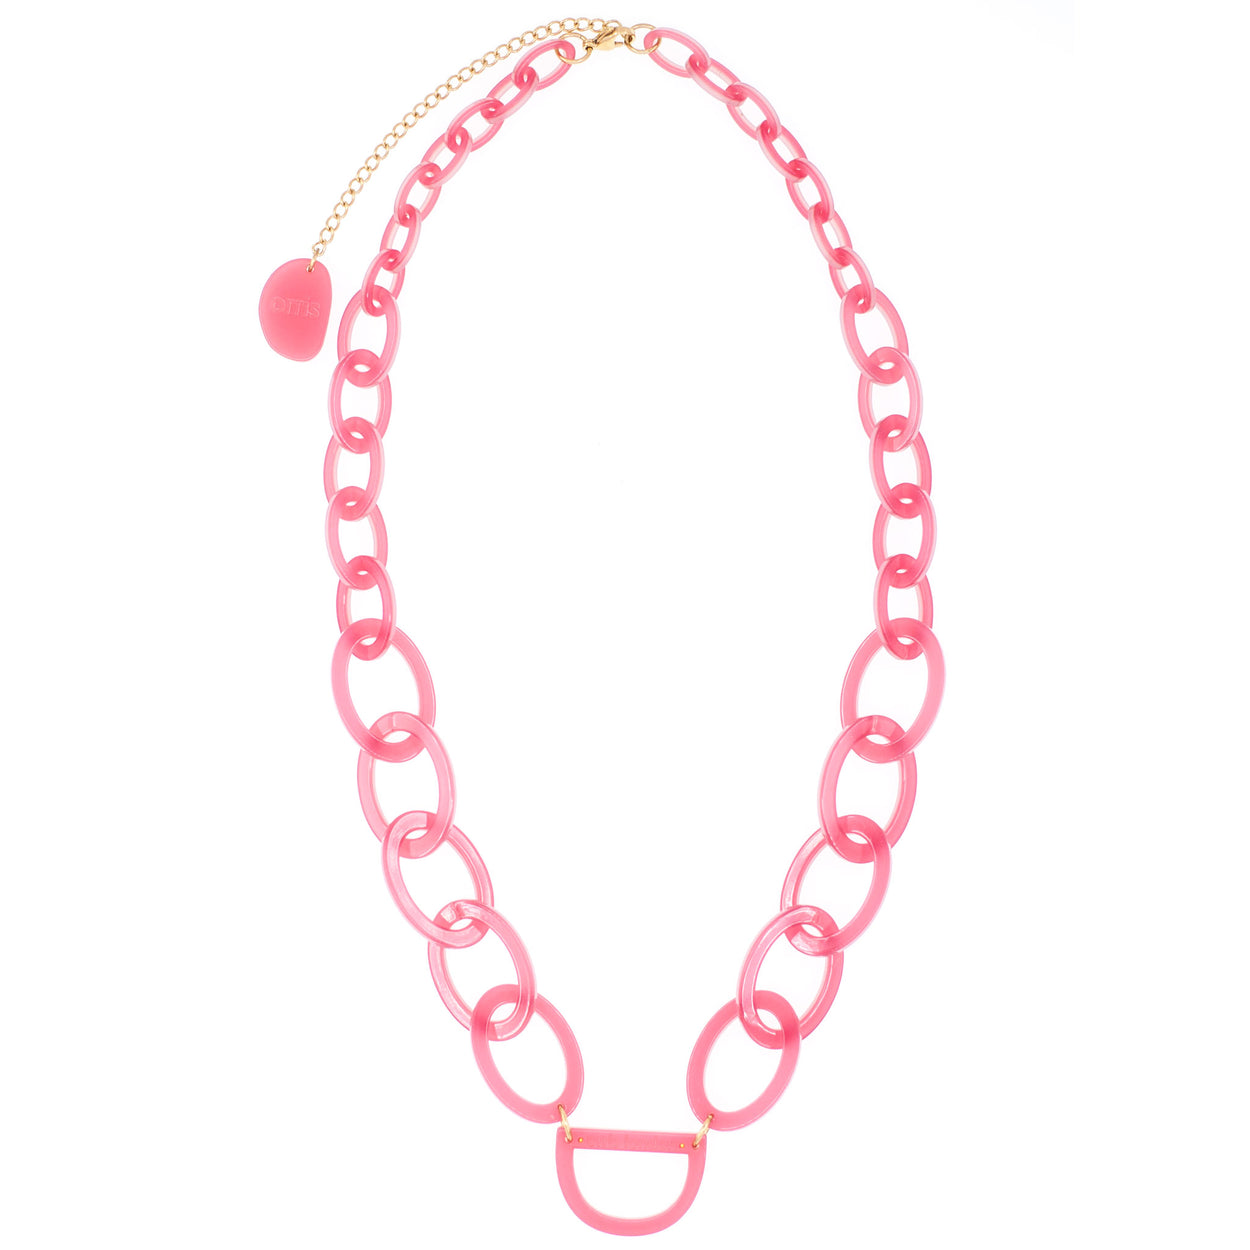 Original D Necklace | Honeysuckle Pink | Glasses Chain | RASSIN & SHEN